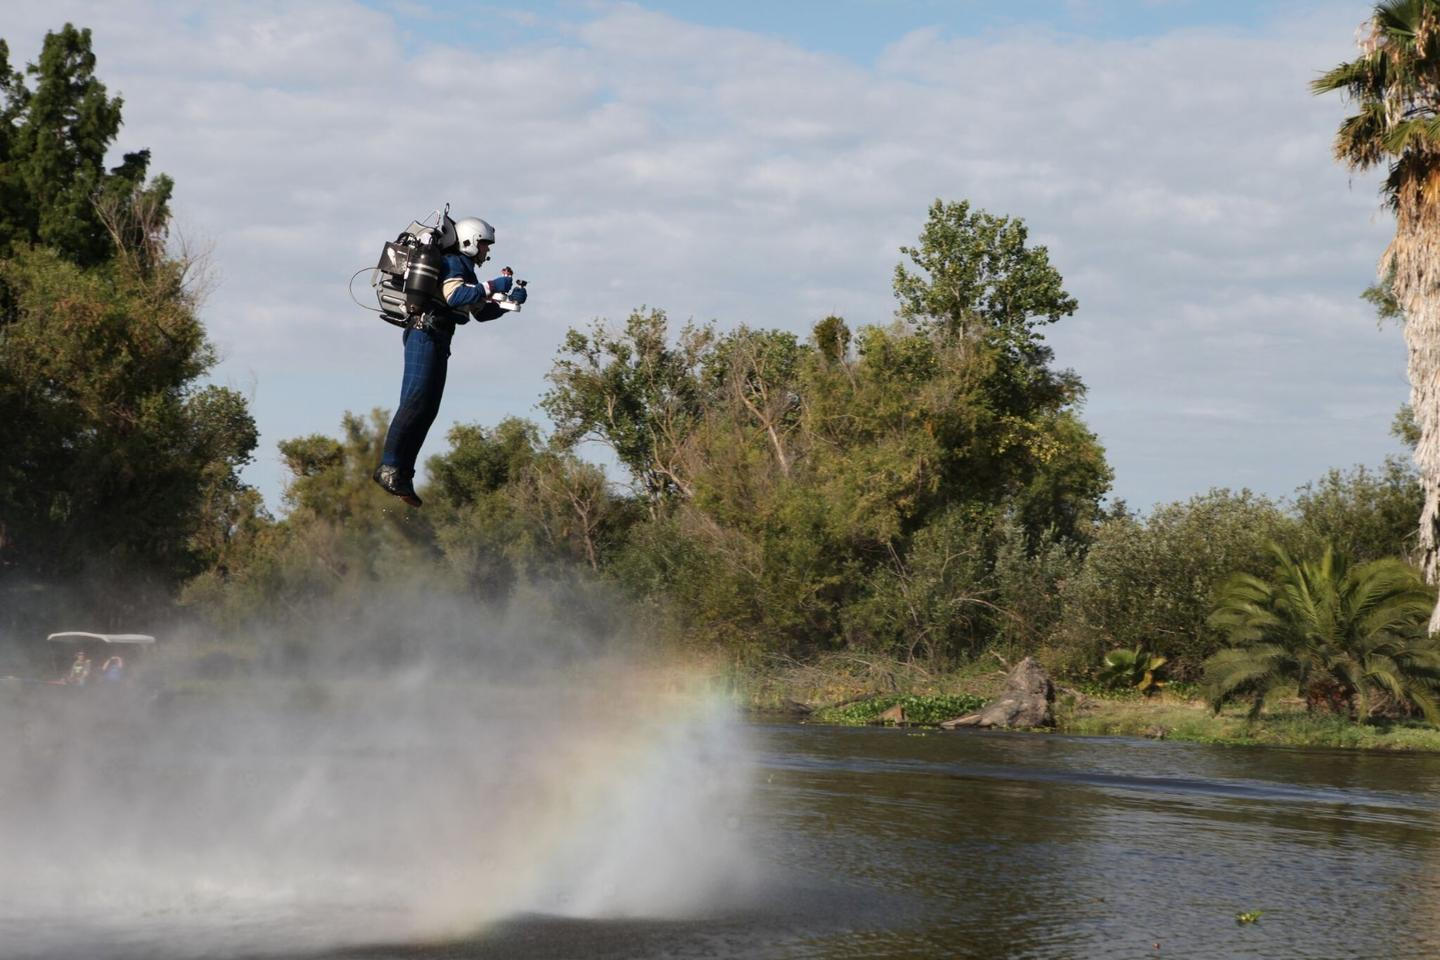 David Mayman takes to the air using the JB-9 jetpack from Jetpack Aviation